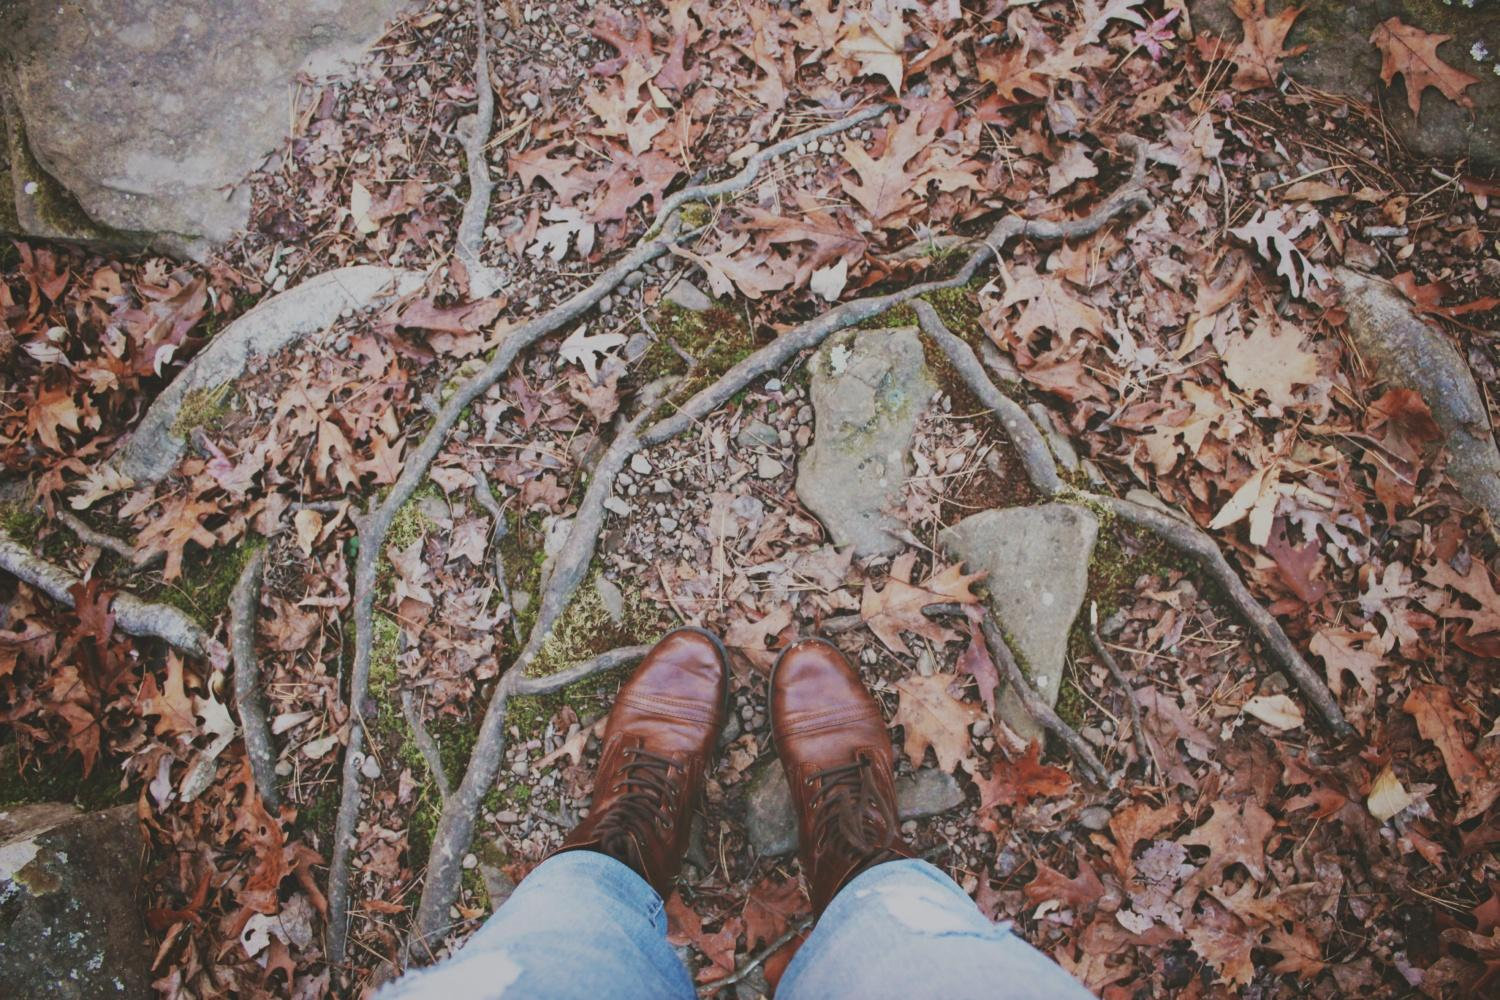 Looking down at boots while standing in forest covered with autumn leaves